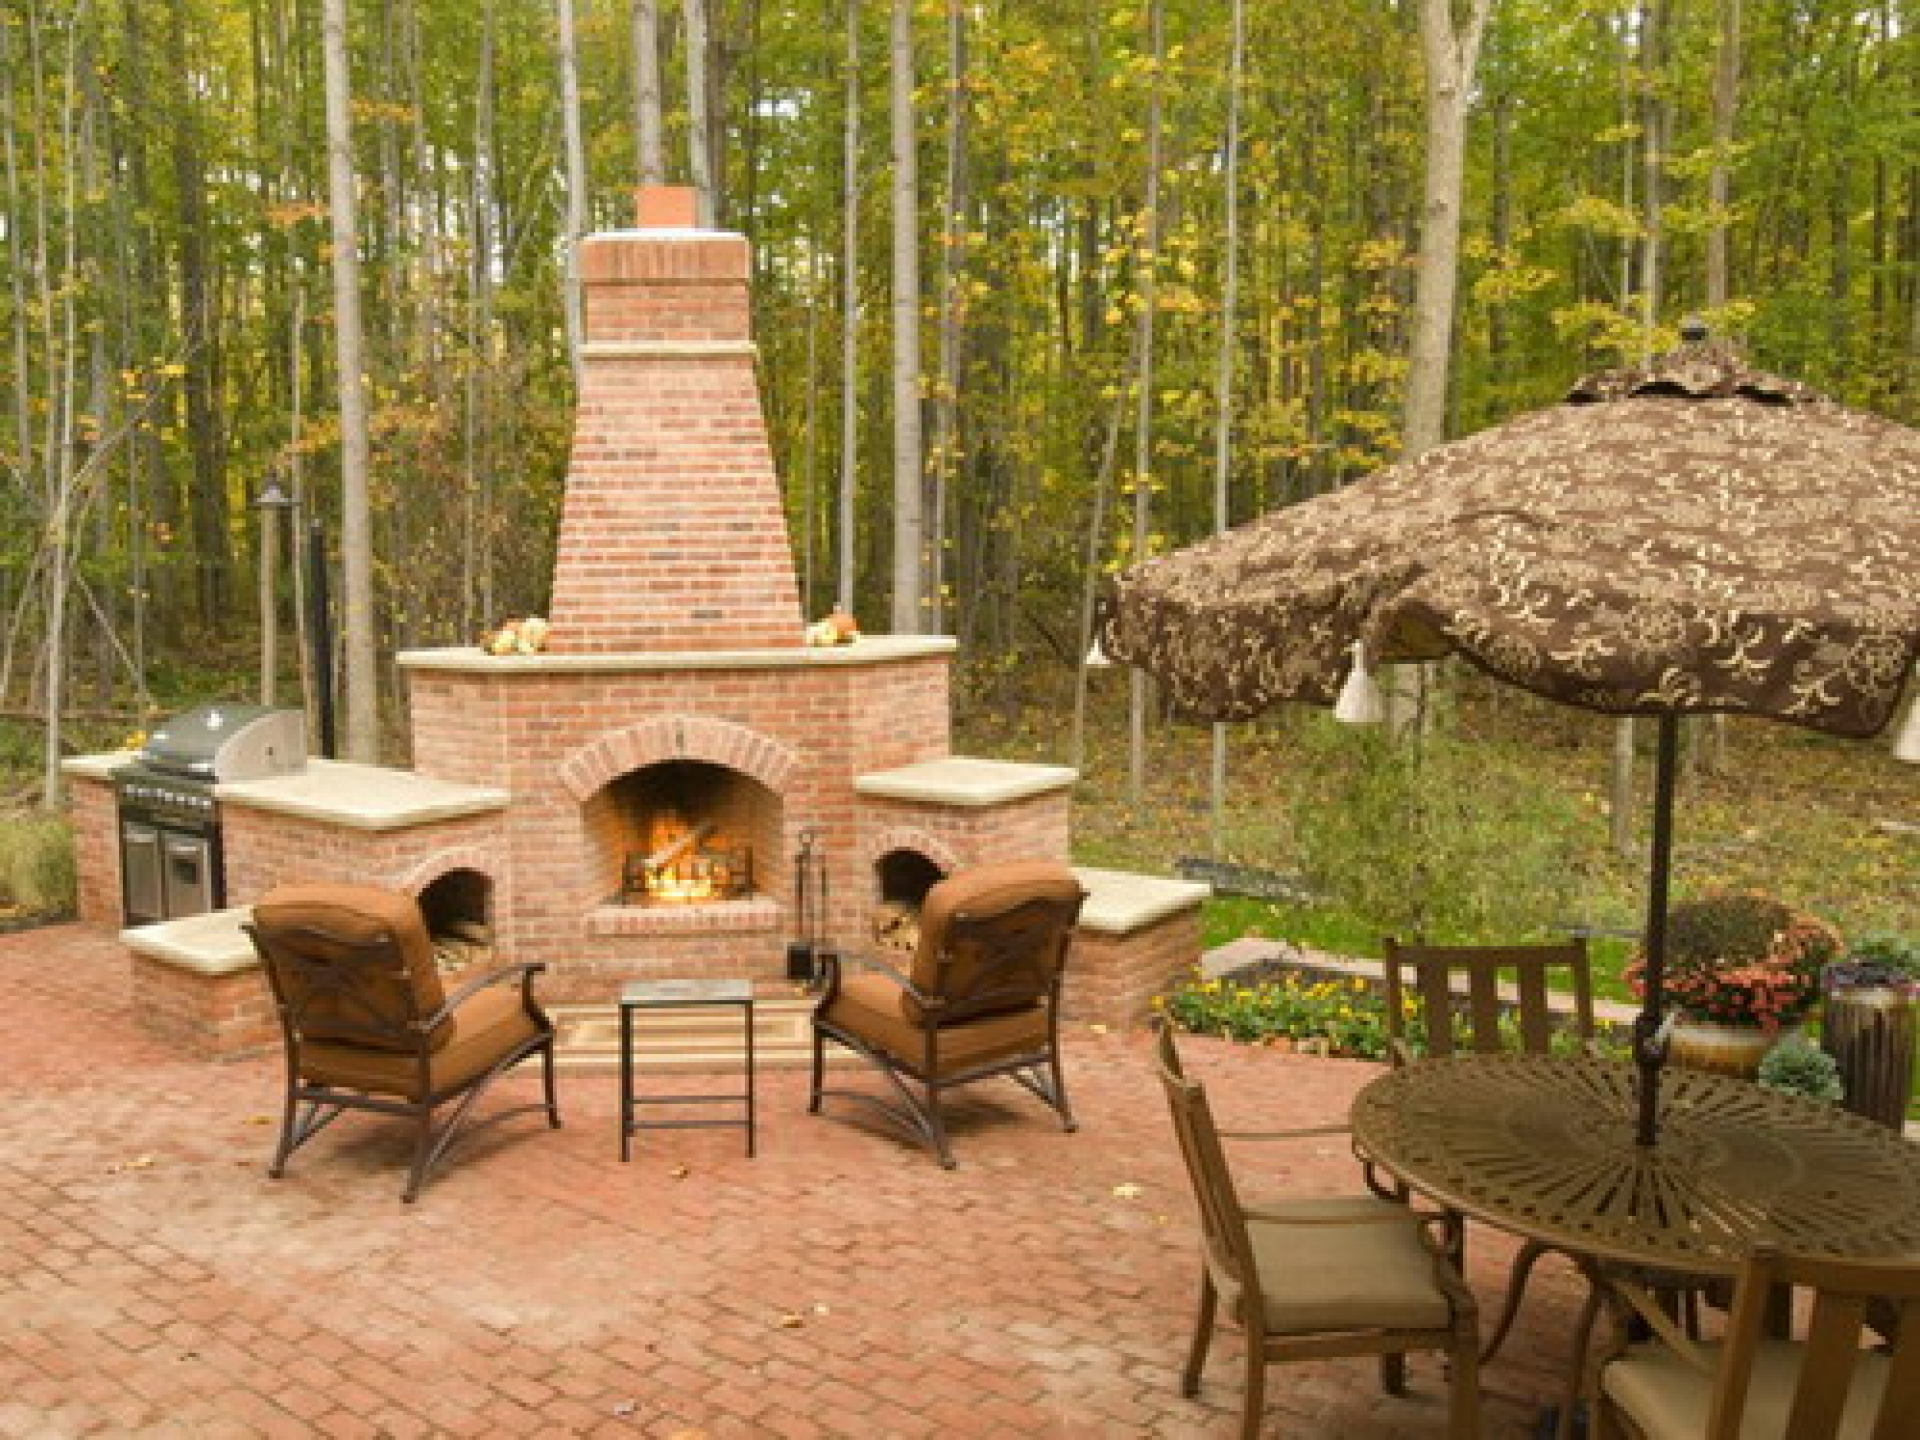 Chiminea Outdoor Bricks Fireplace With Chairs And Table On Brick Paver For Patio Decor Ideas